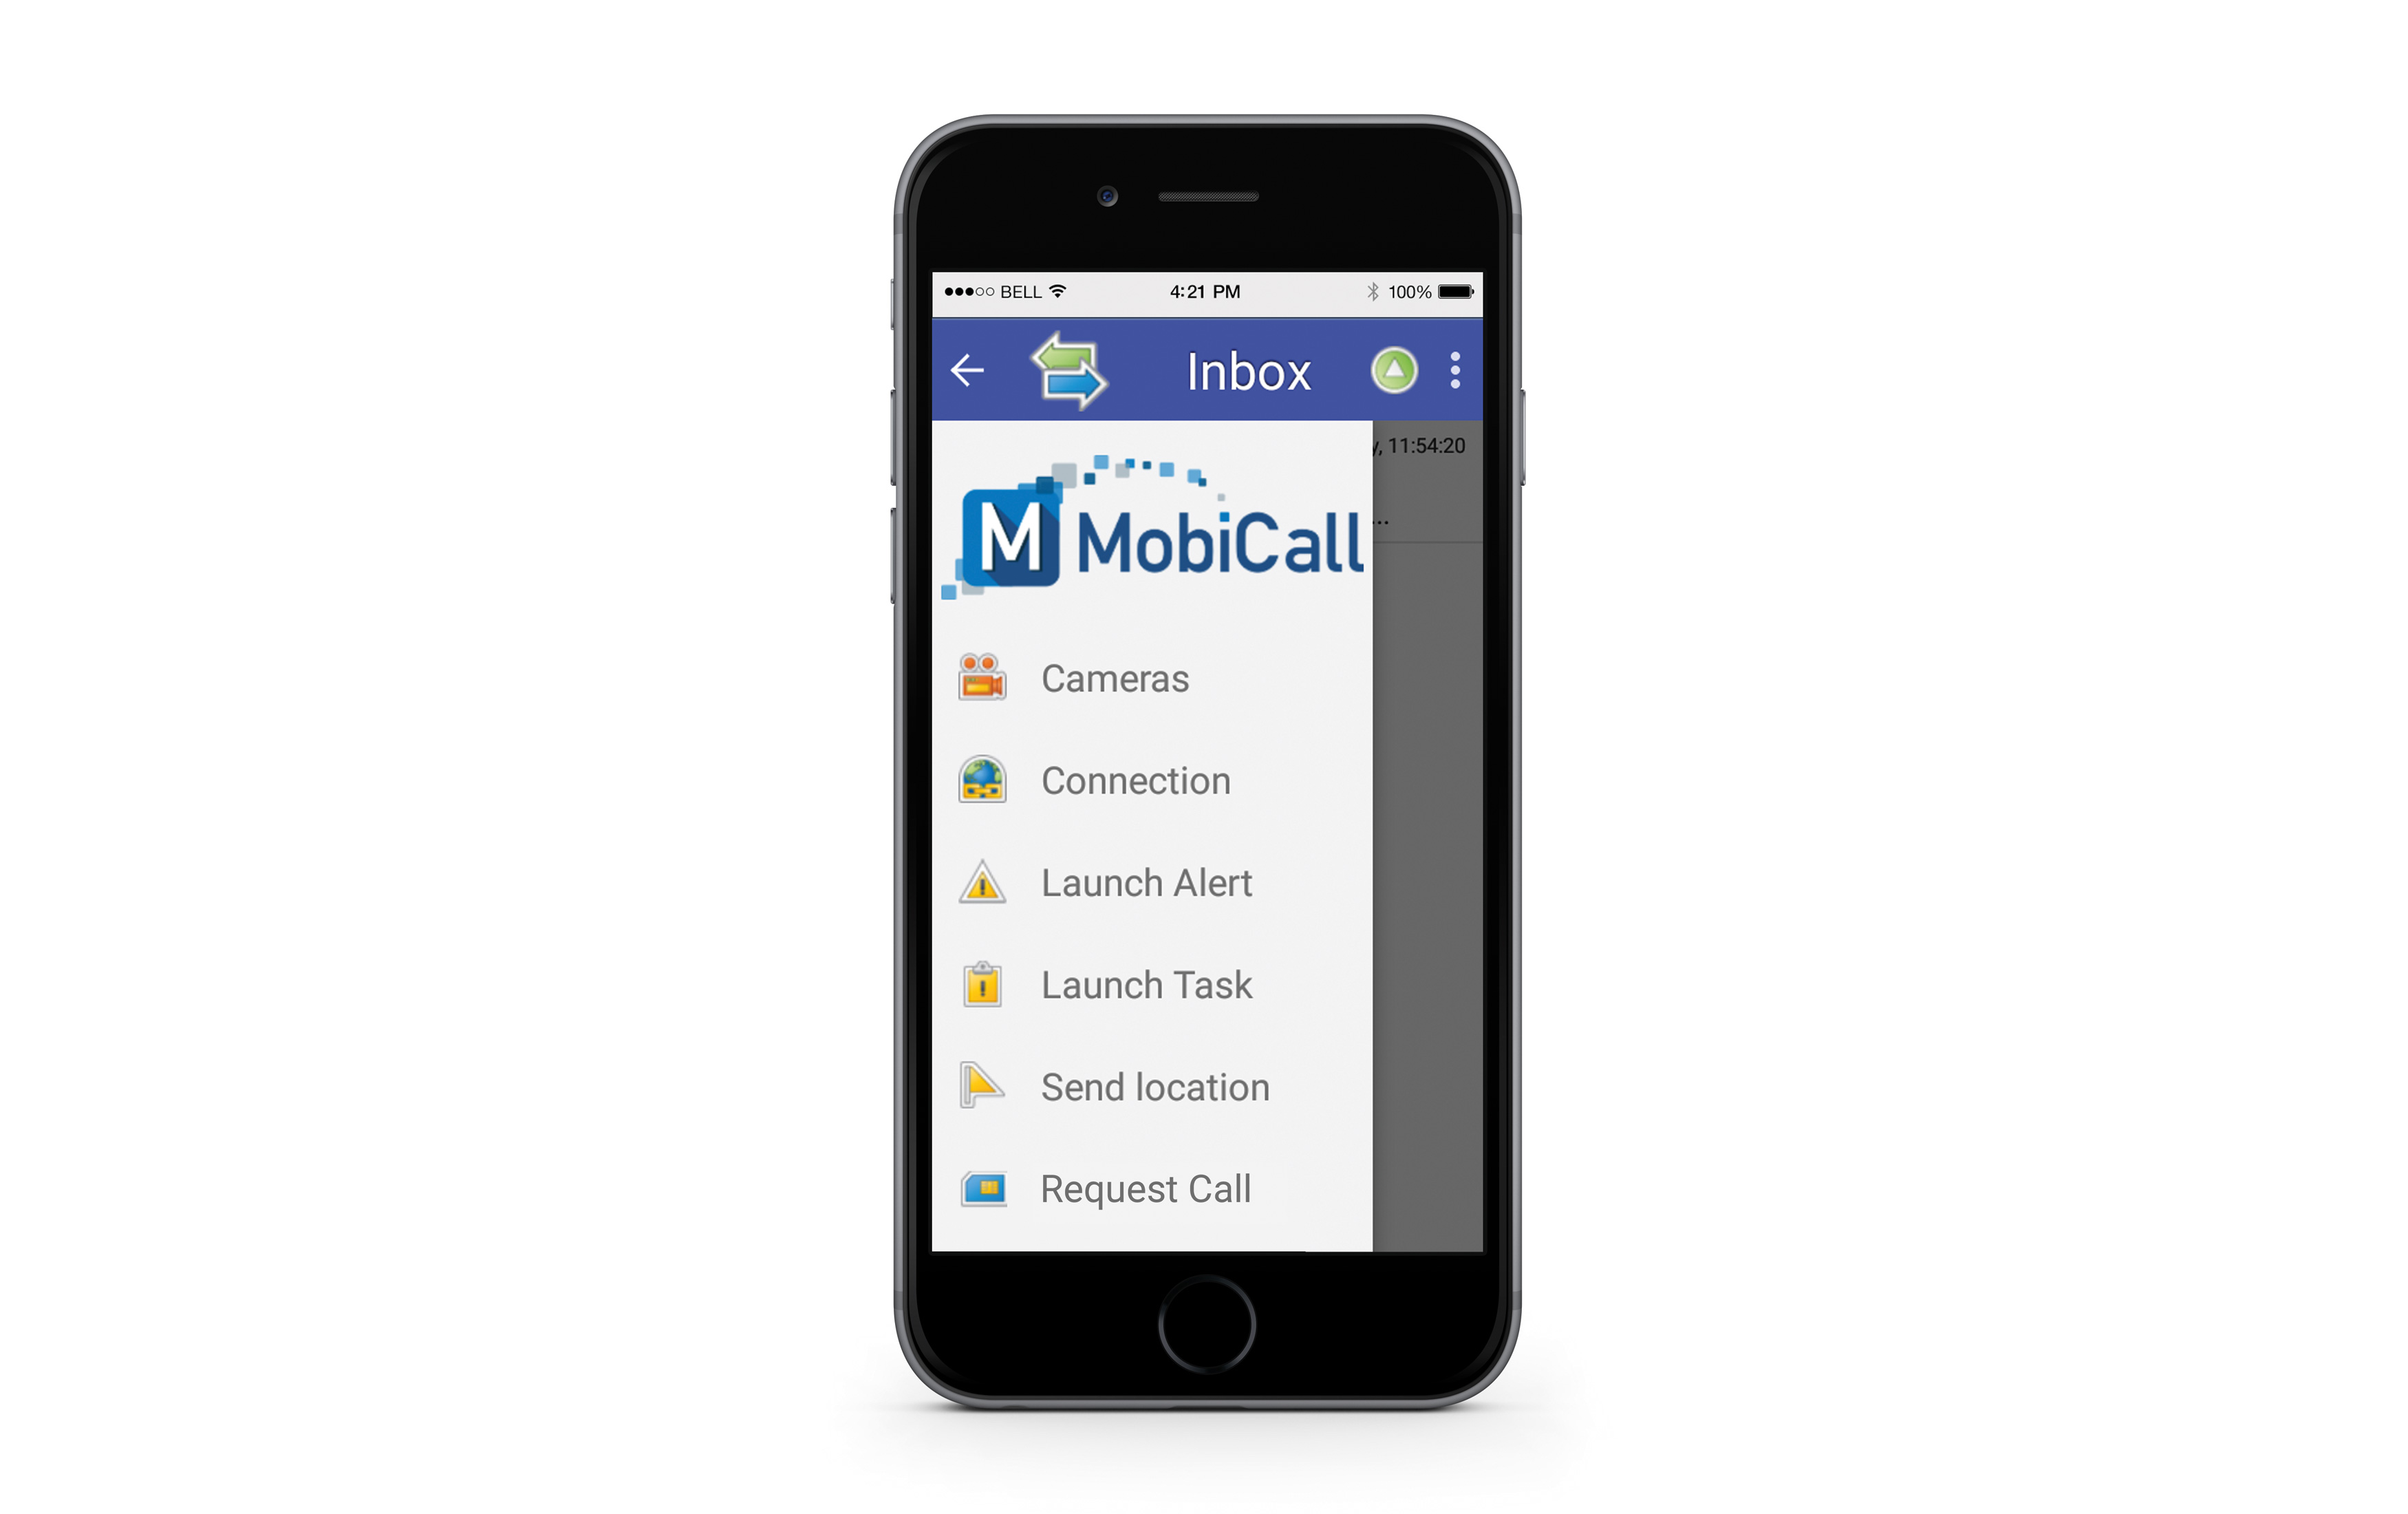 mobicall app interface